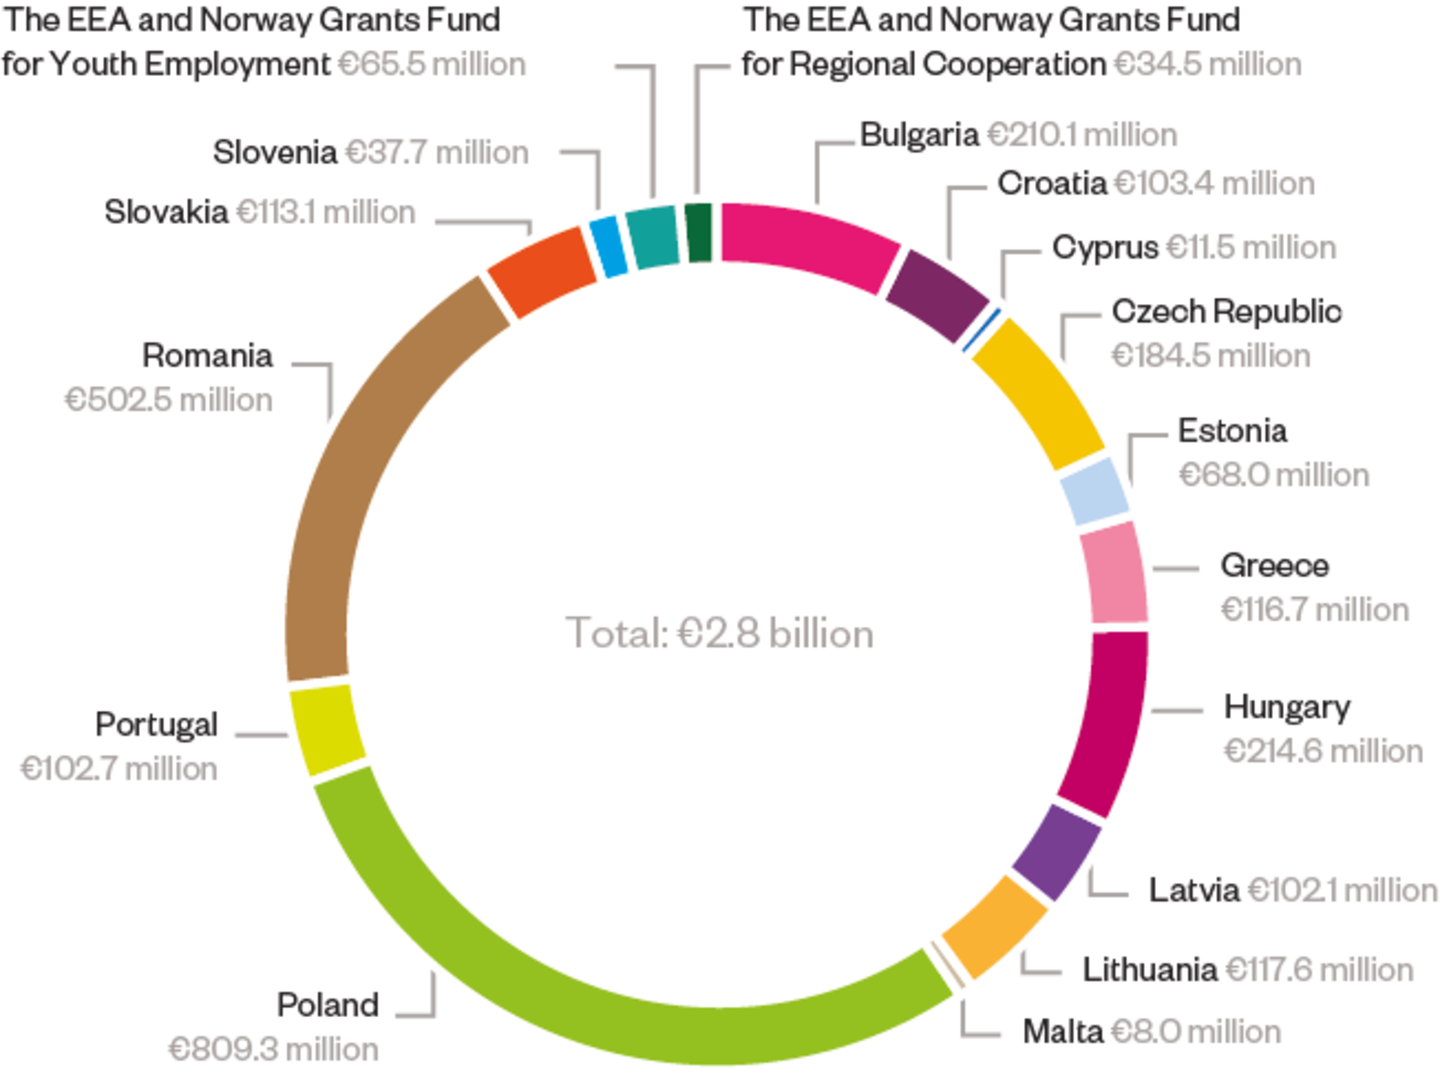 A pie chart illustrating the total EEA and Norway Grants allocation across the 15 beneficiary states